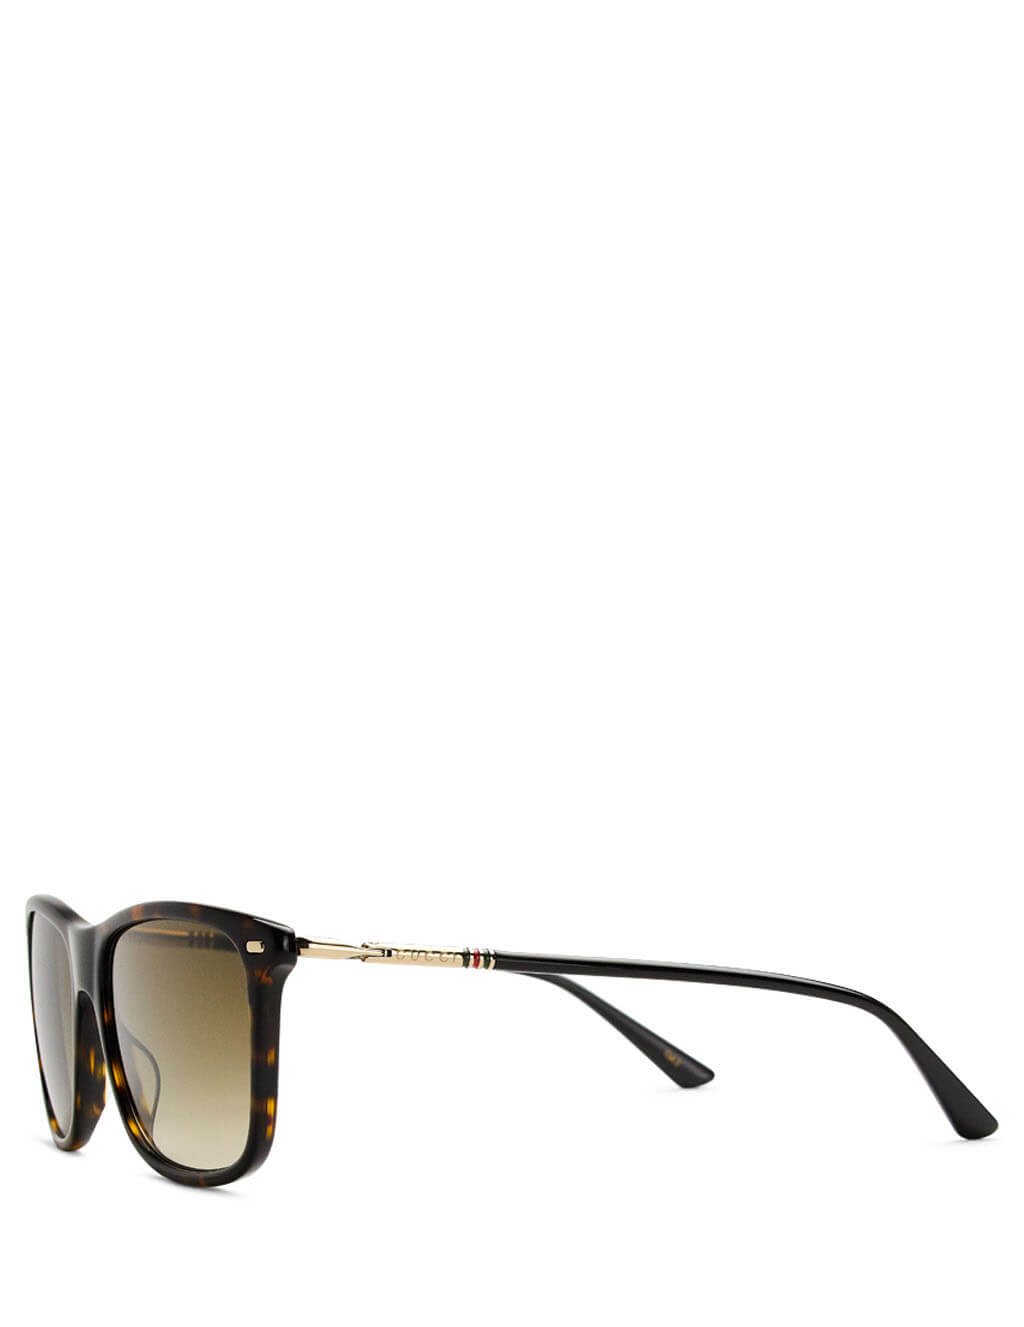 Gucci Men's Havana Square Frame Sunglasses GG 0518/S 002